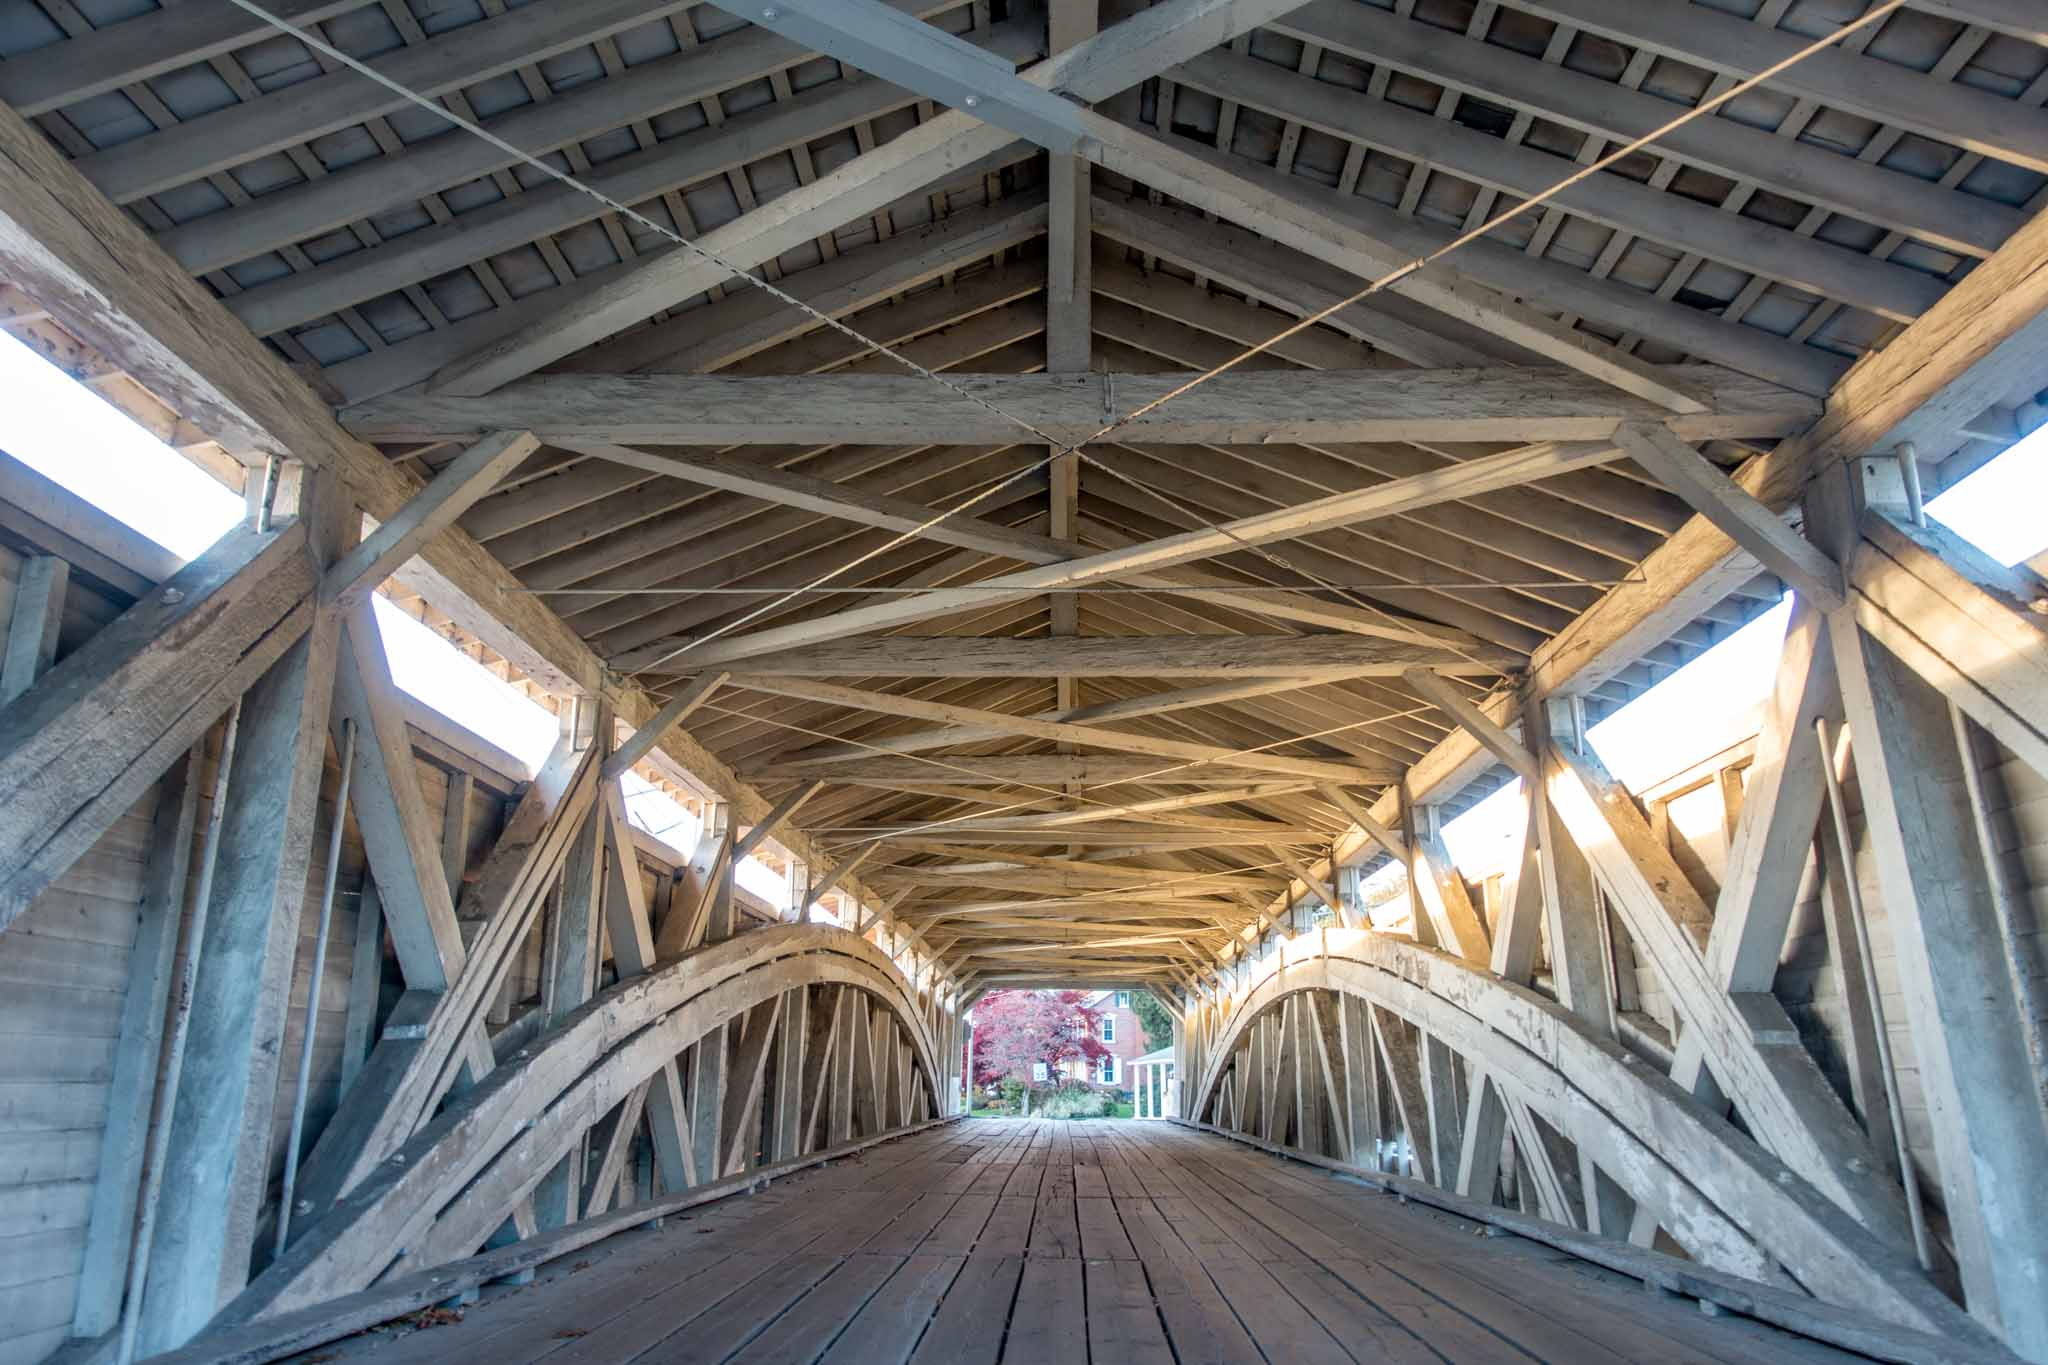 The interior of one of the old covered bridges in the Lehigh Valley near Allentown